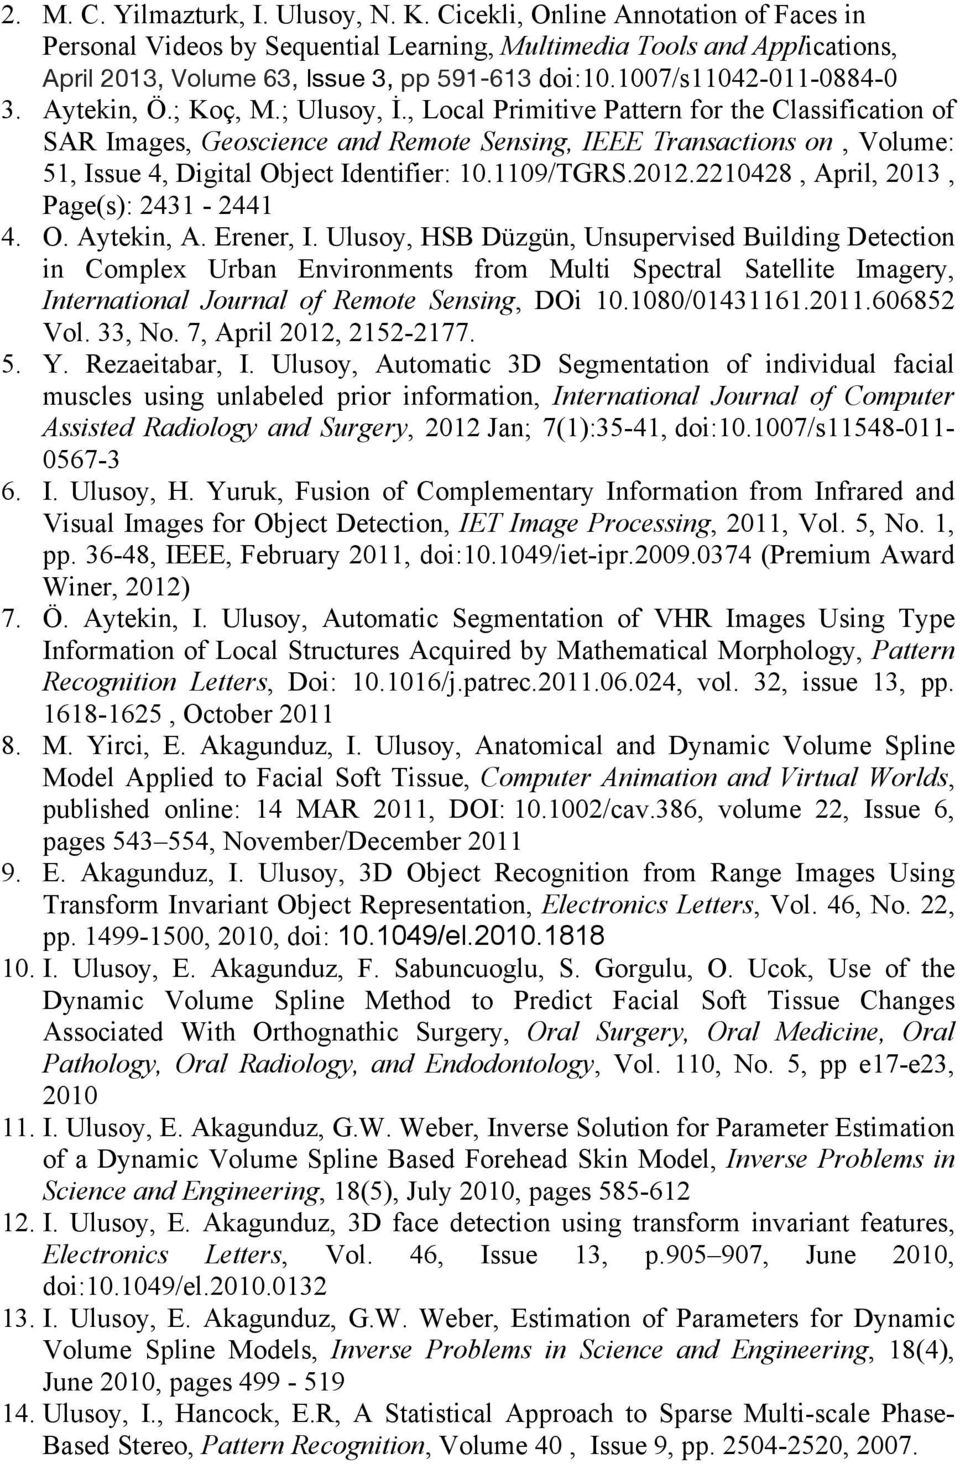 Aytekin, Ö.; Koç, M.; Ulusoy, İ., Local Primitive Pattern for the Classification of SAR Images, Geoscience and Remote Sensing, IEEE Transactions on, Volume: 51, Issue 4, Digital Object Identifier: 10.